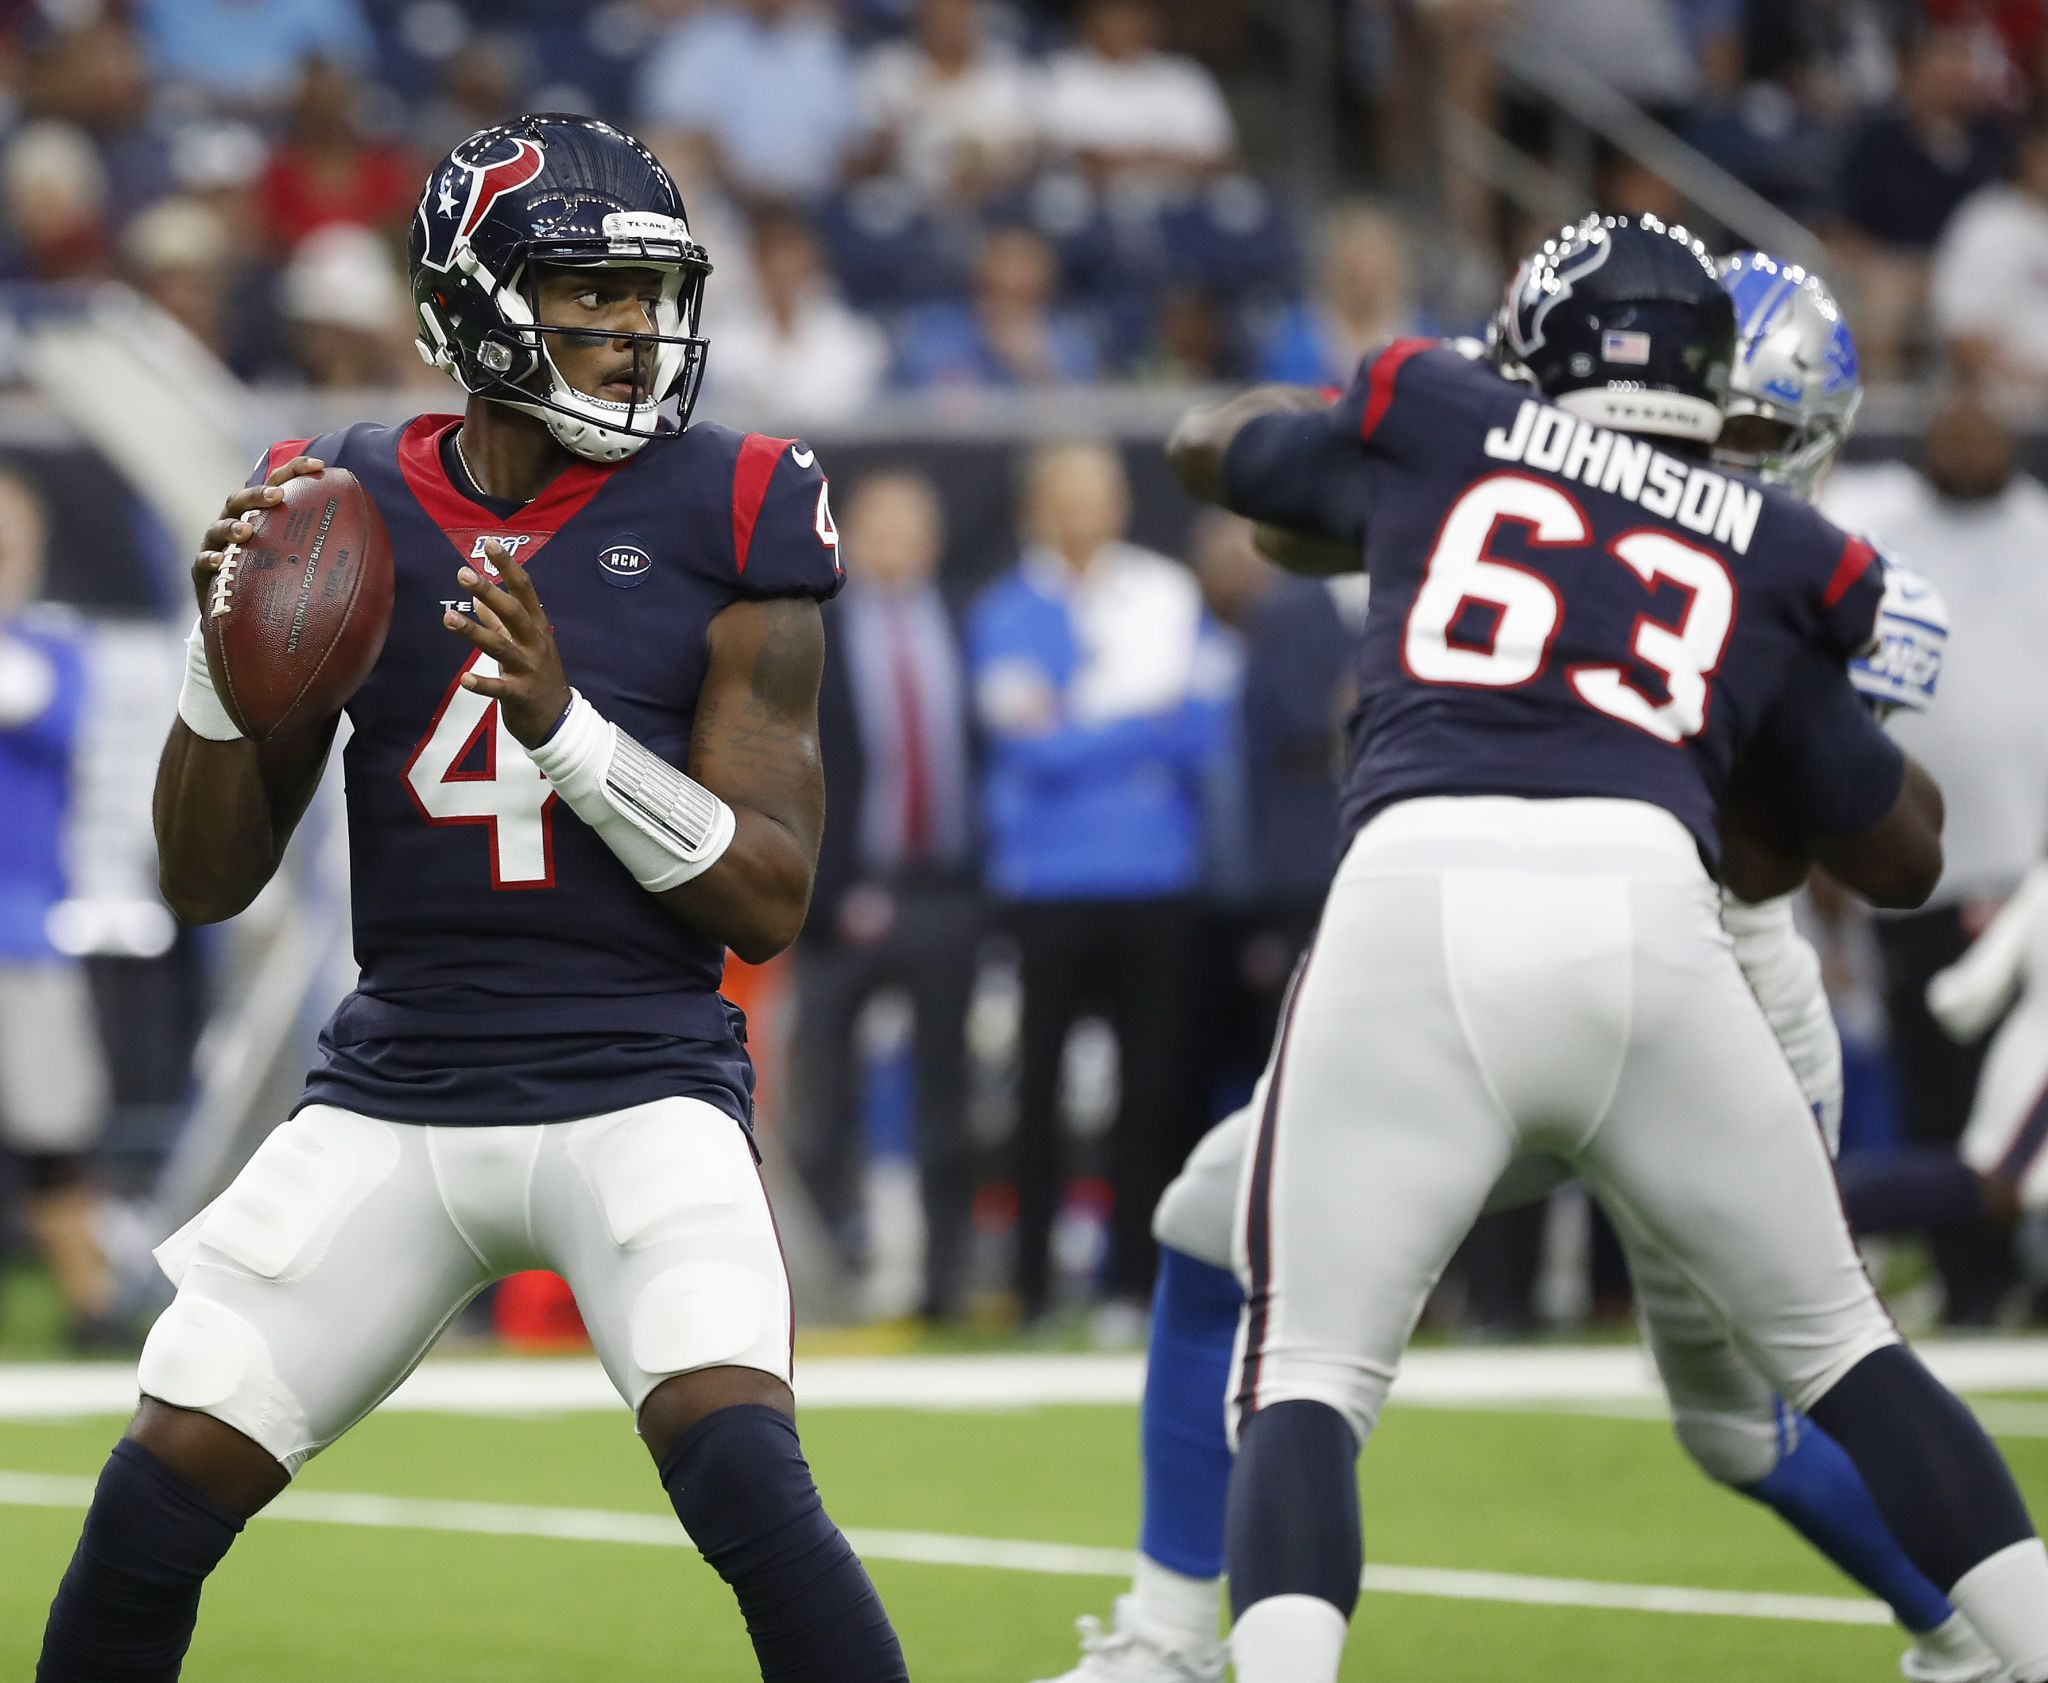 Solomon: Hard to see Texans cratering this season